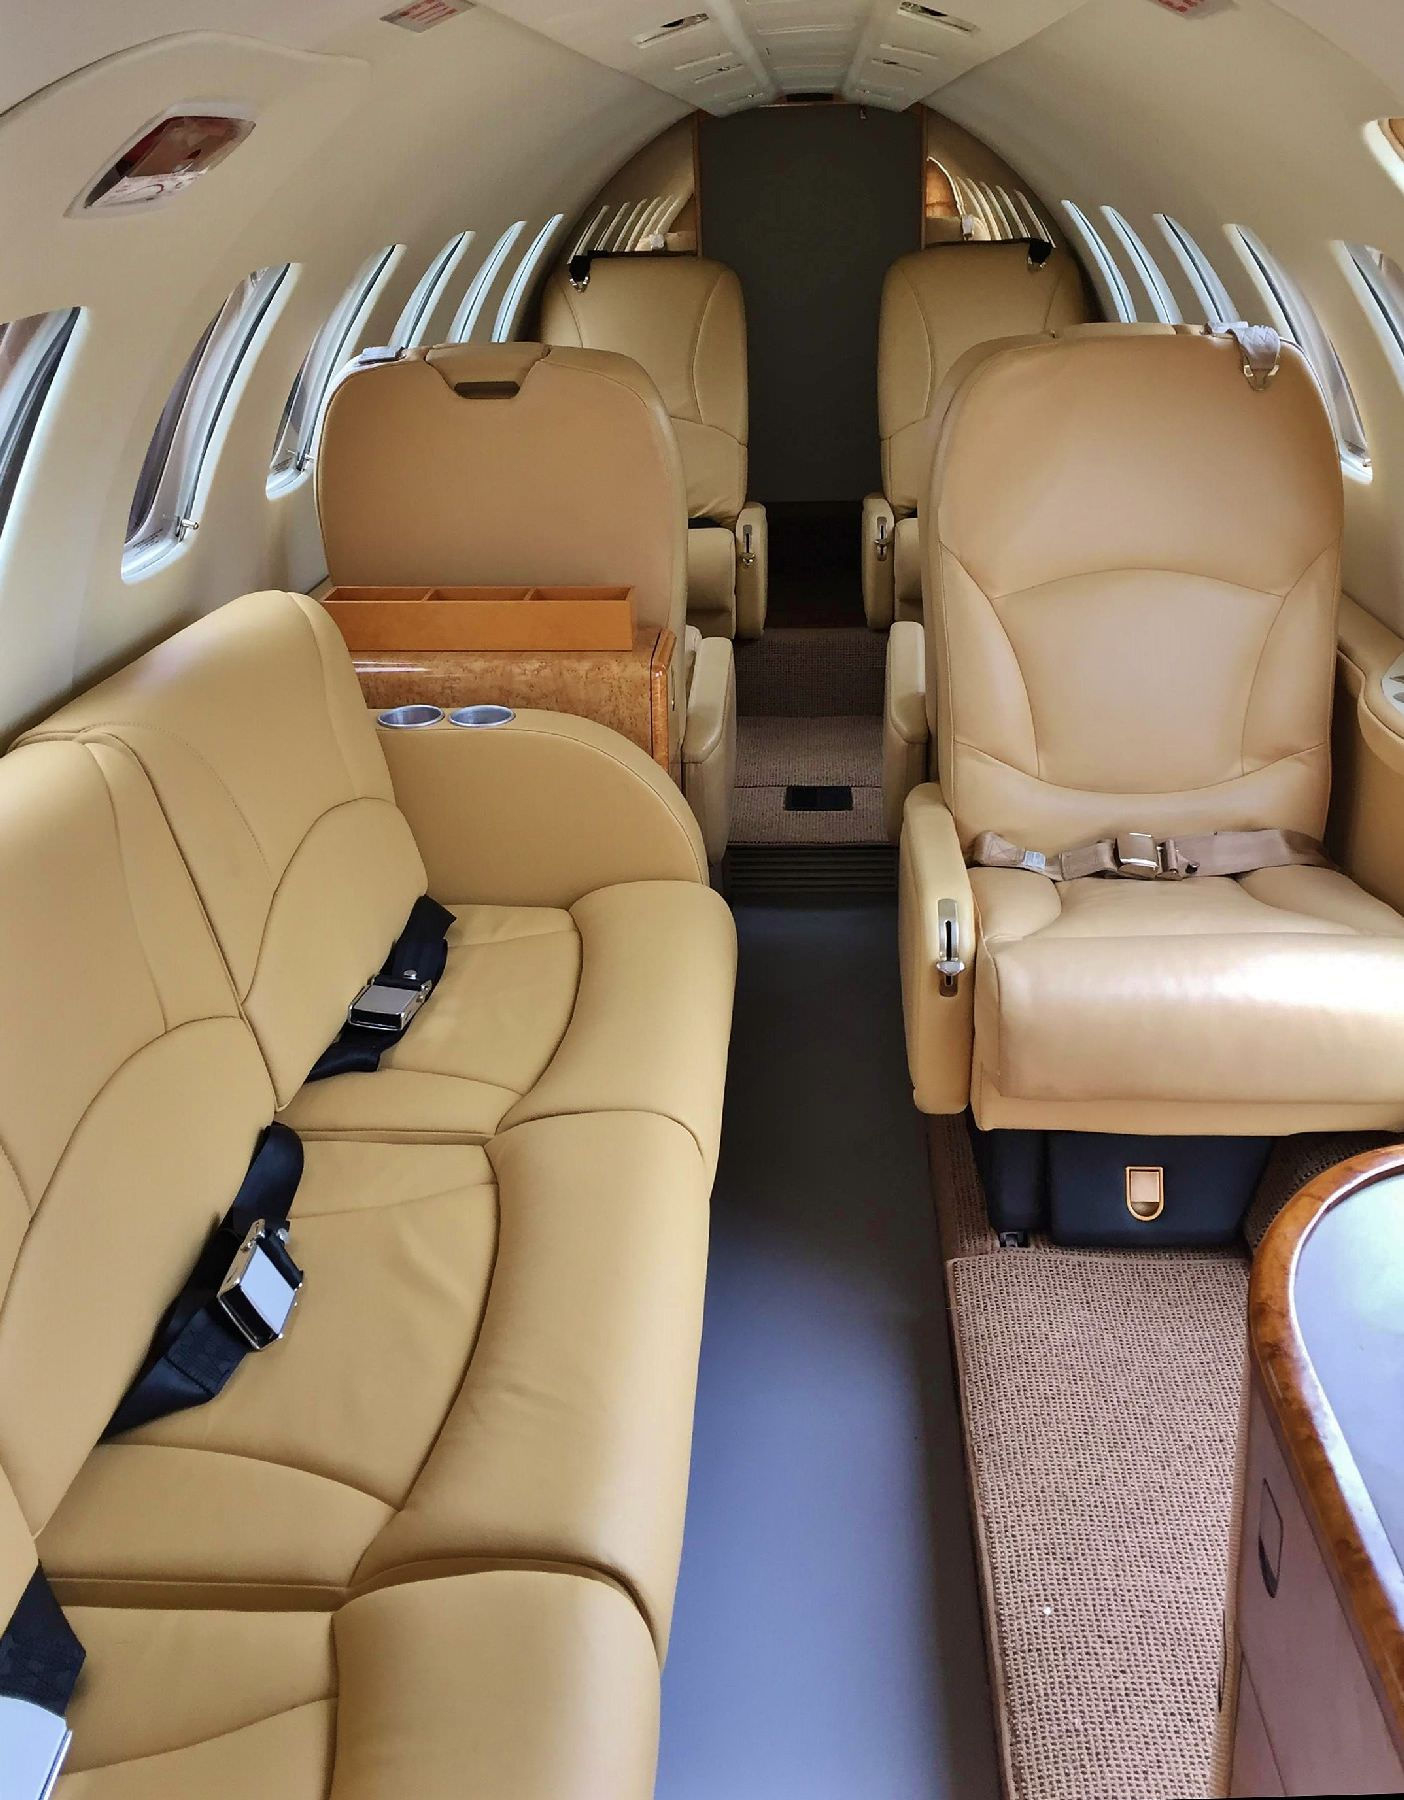 Nothing will transform your Citation cabin interior and provide a more modern, open feeling than a divan. Increase the utility and functionality of your Citation with this 3 place side facing divan.  Whether you need to add one or more passengers, open up